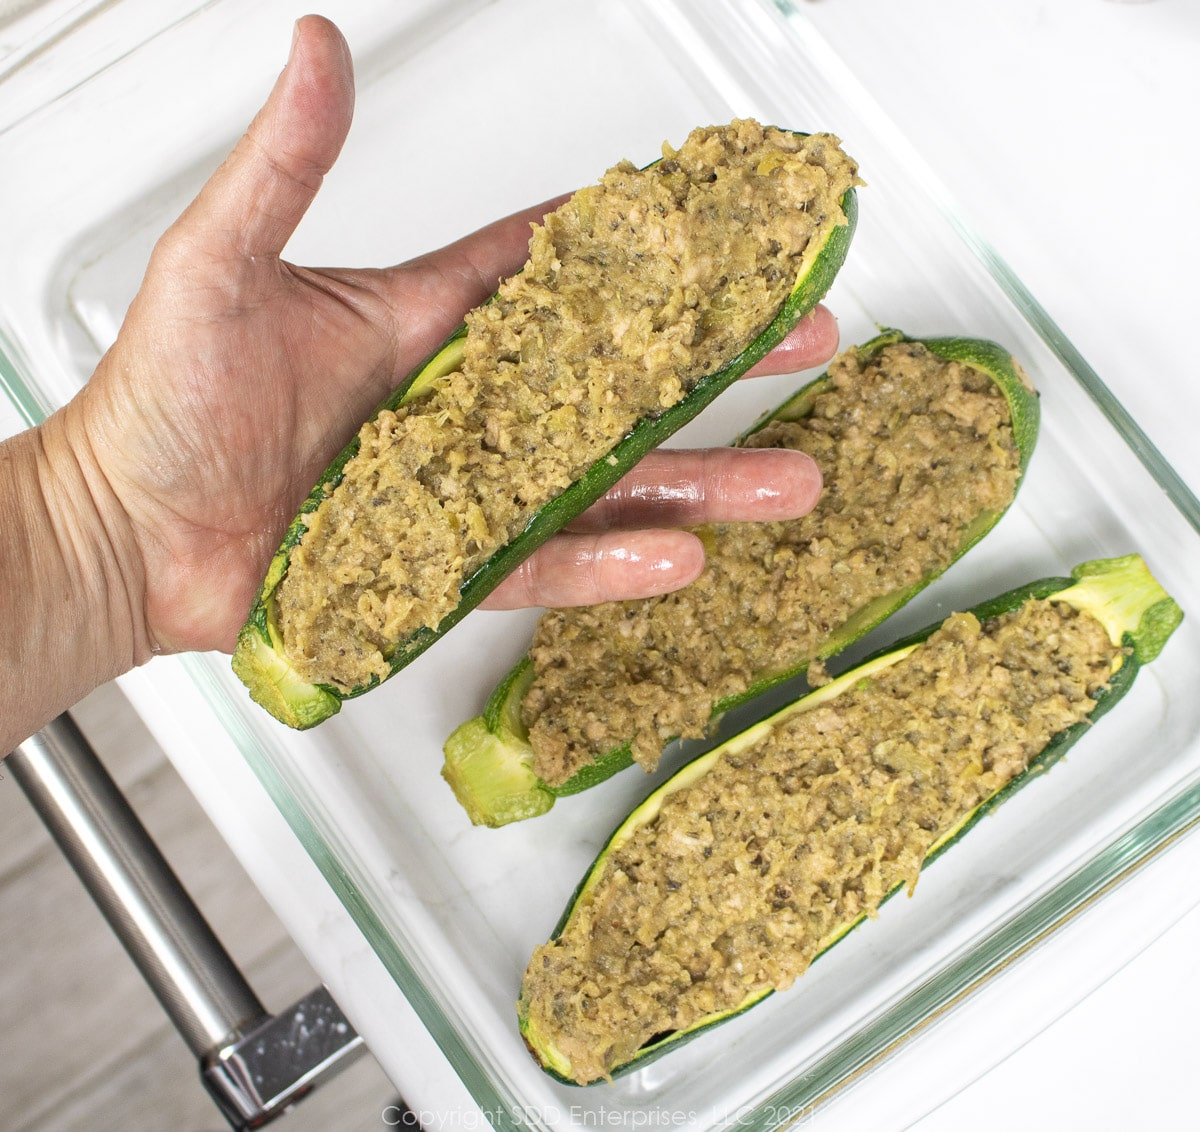 filling stuffed into hollowed zucchini and placed in a baking dish